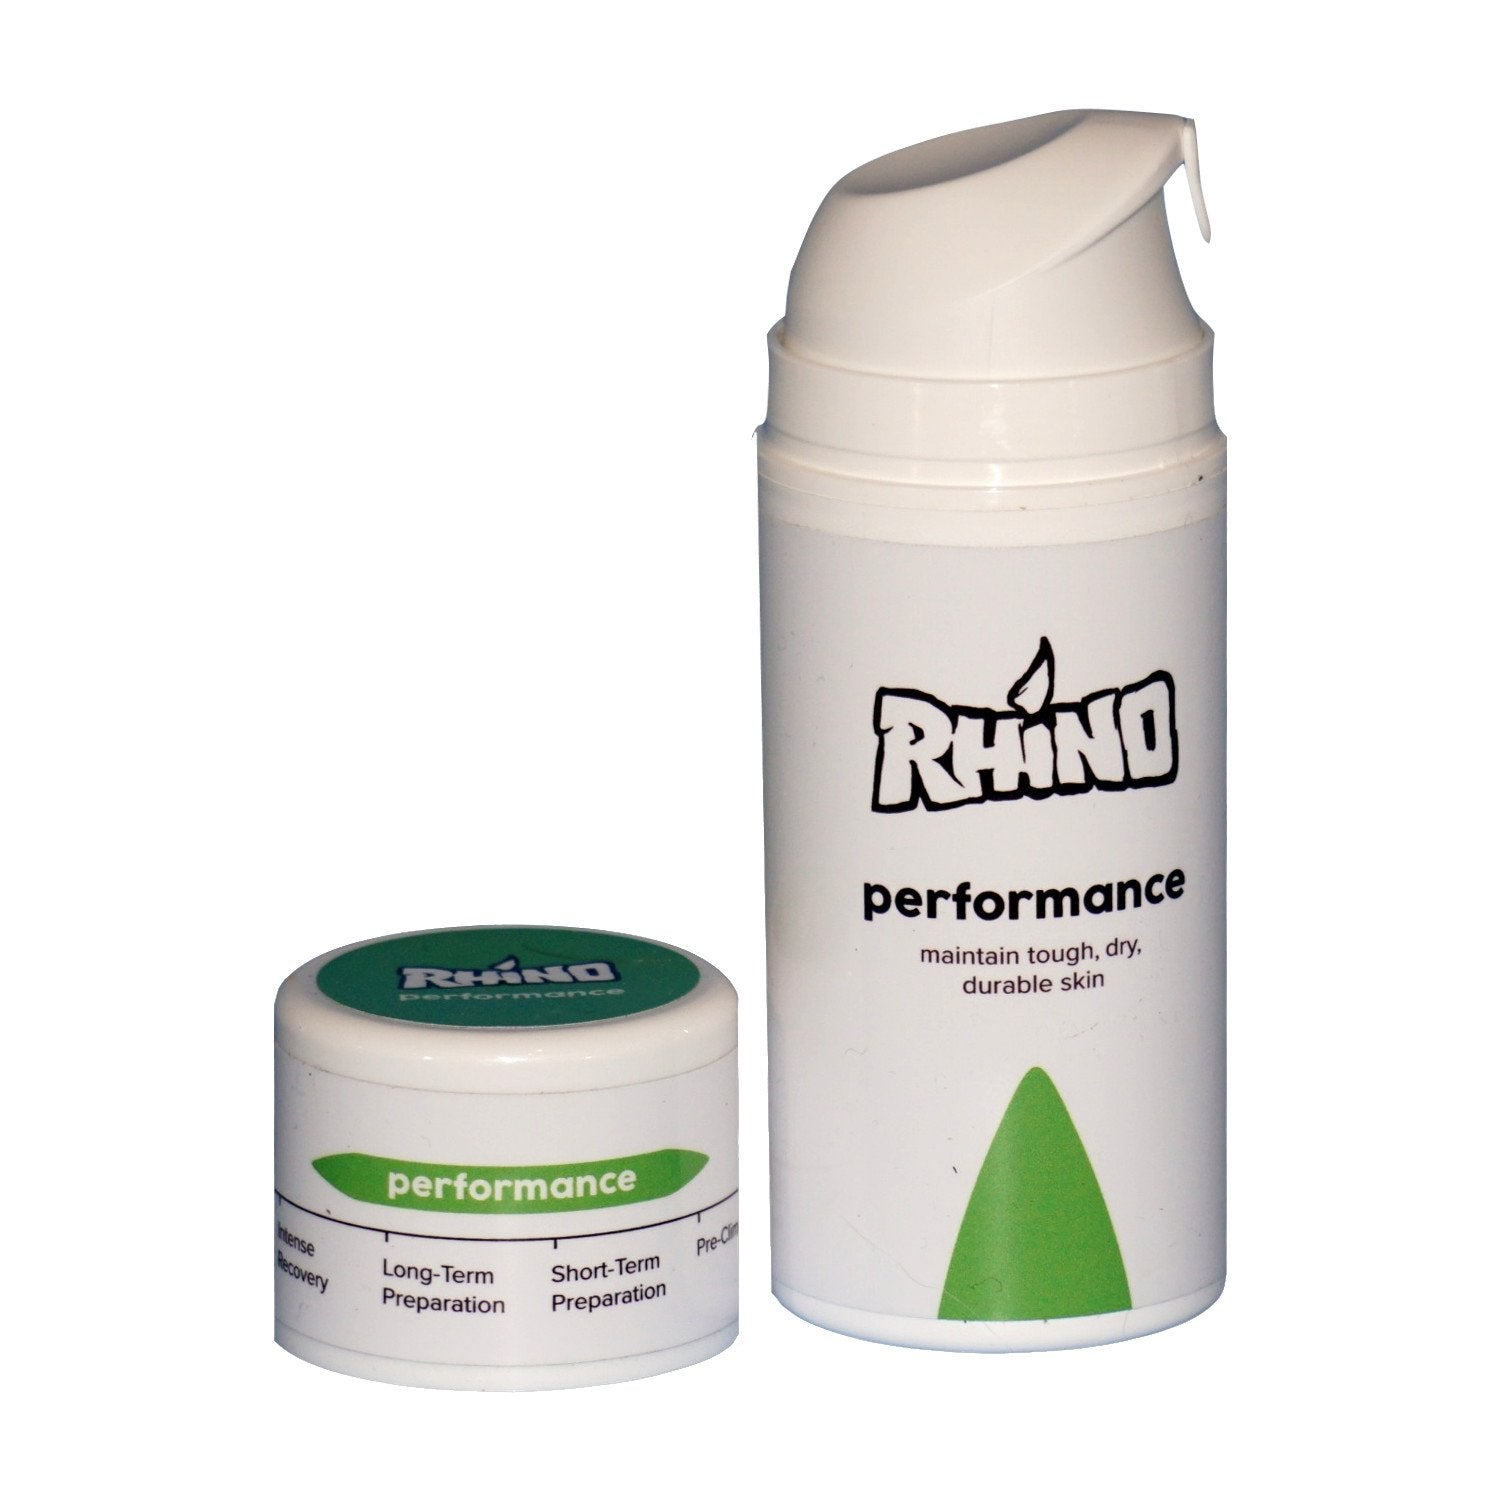 Rhino Skin Solutions PERFORMANCE (1.7oz/50ml)